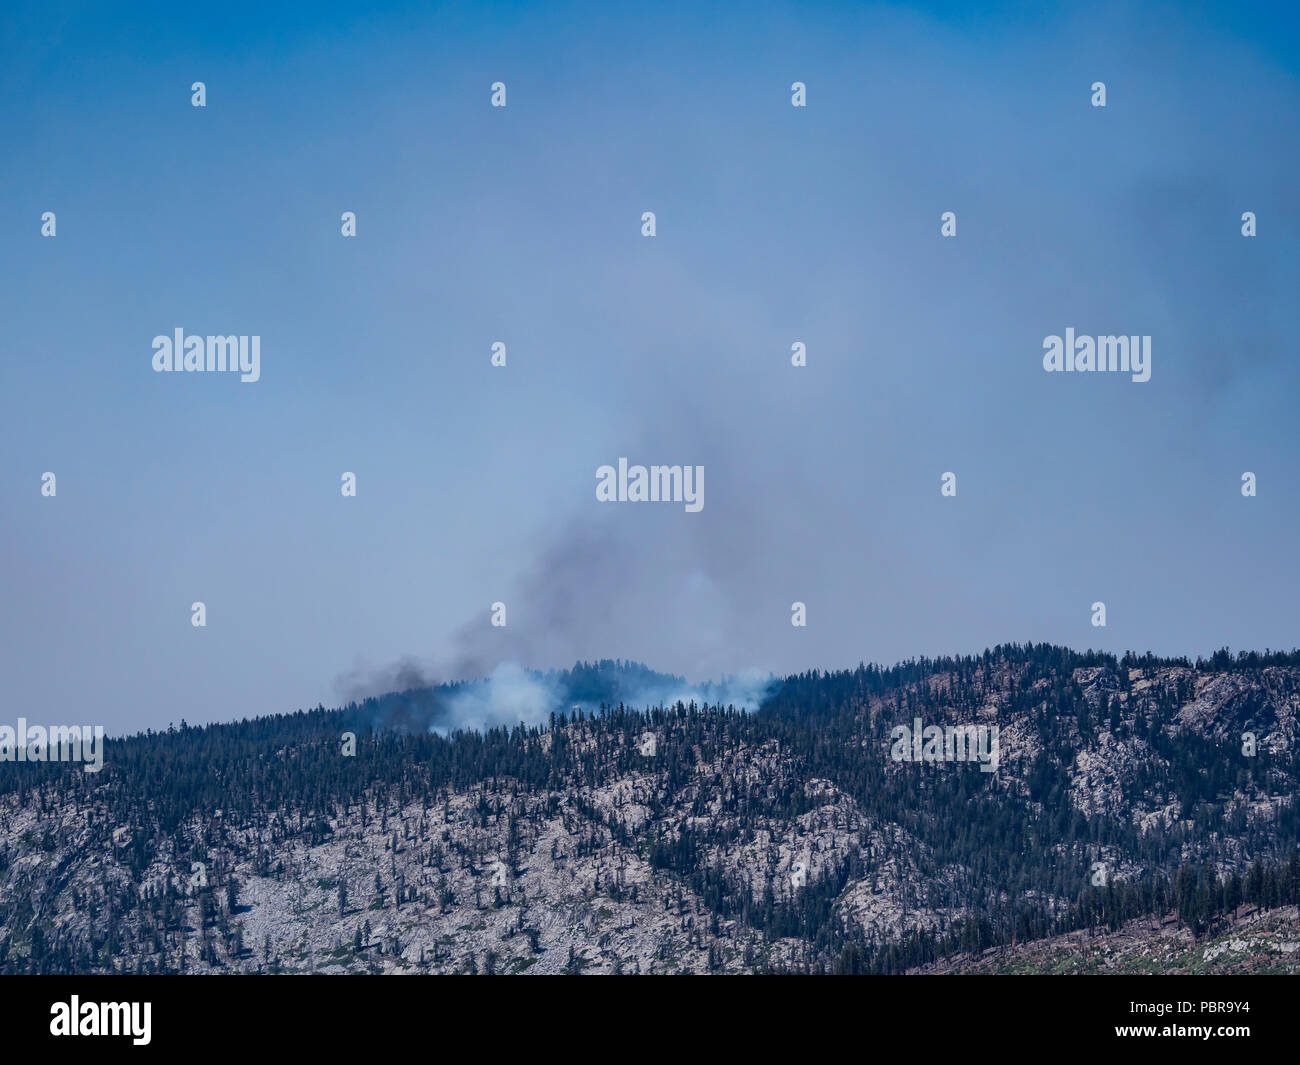 Forest fire smoke, Inyo National Forest above Mammoth Lakes, California. - Stock Image